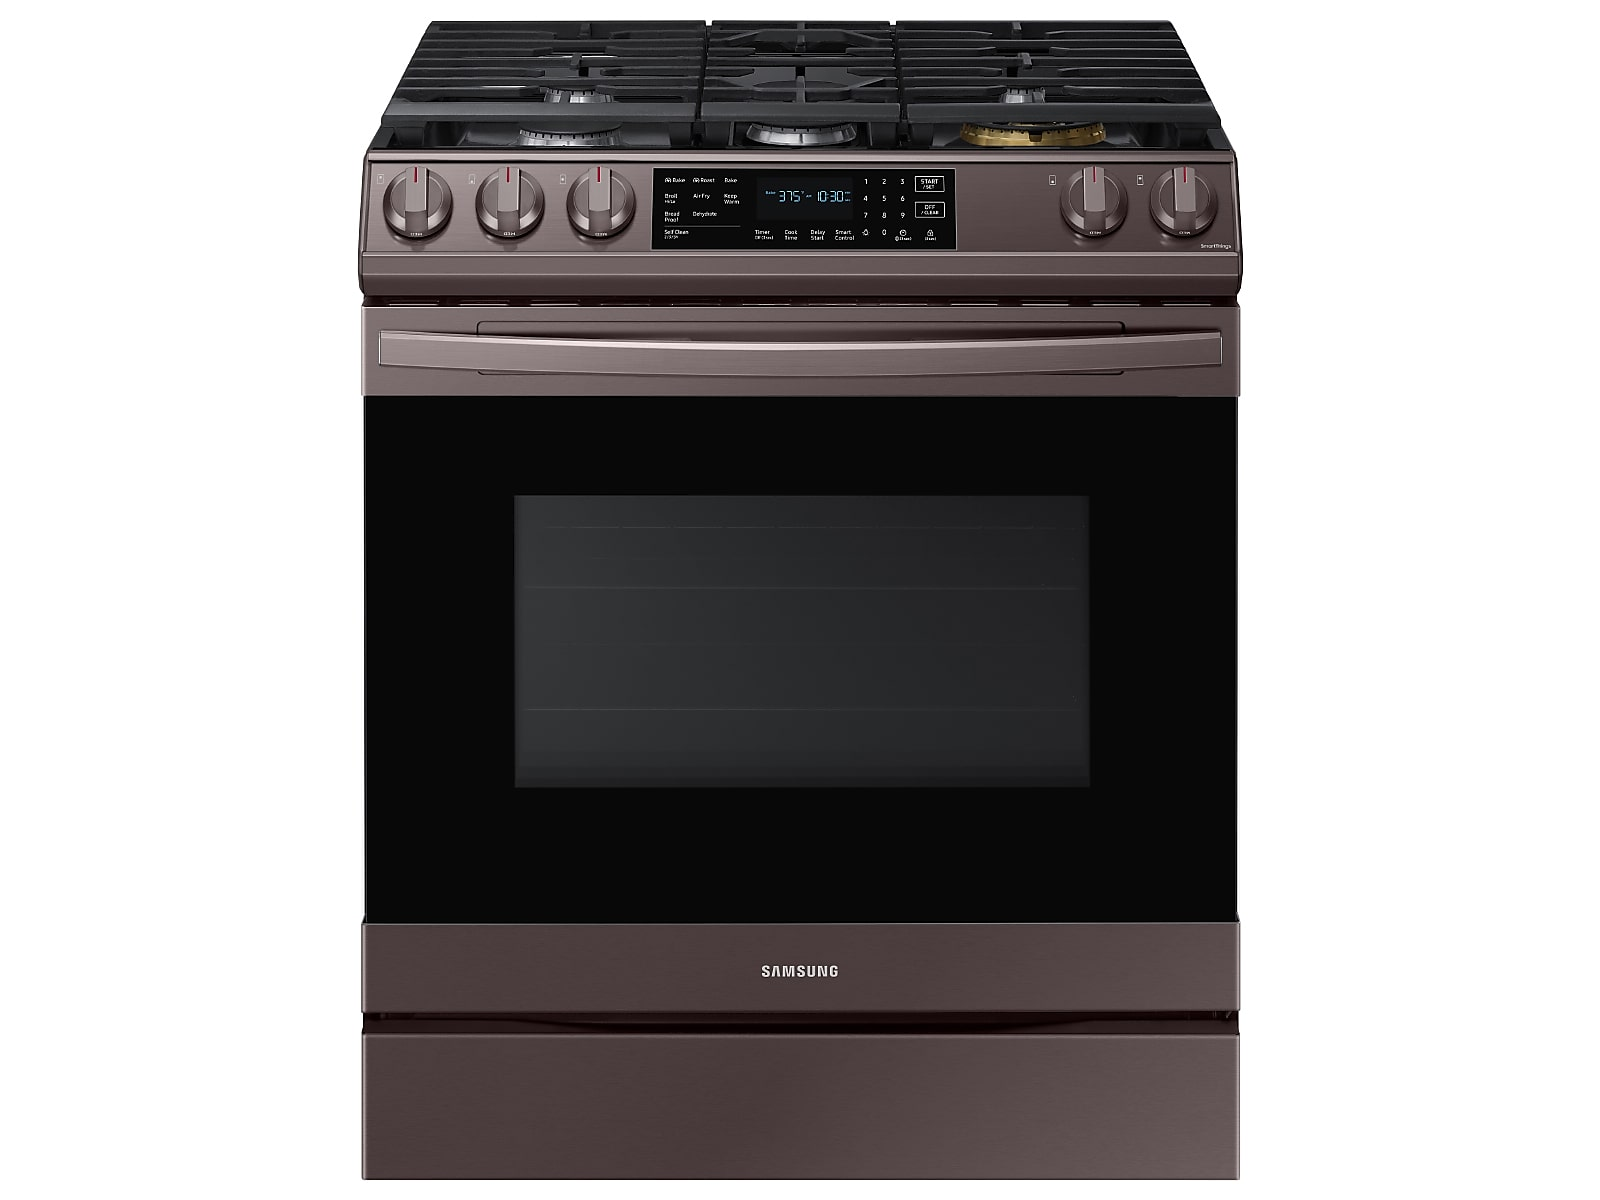 Samsung 6.0 cu ft. Smart Slide-in Gas Range with Air Fry in Tuscan Stainless Steel(NX60T8511ST/AA)